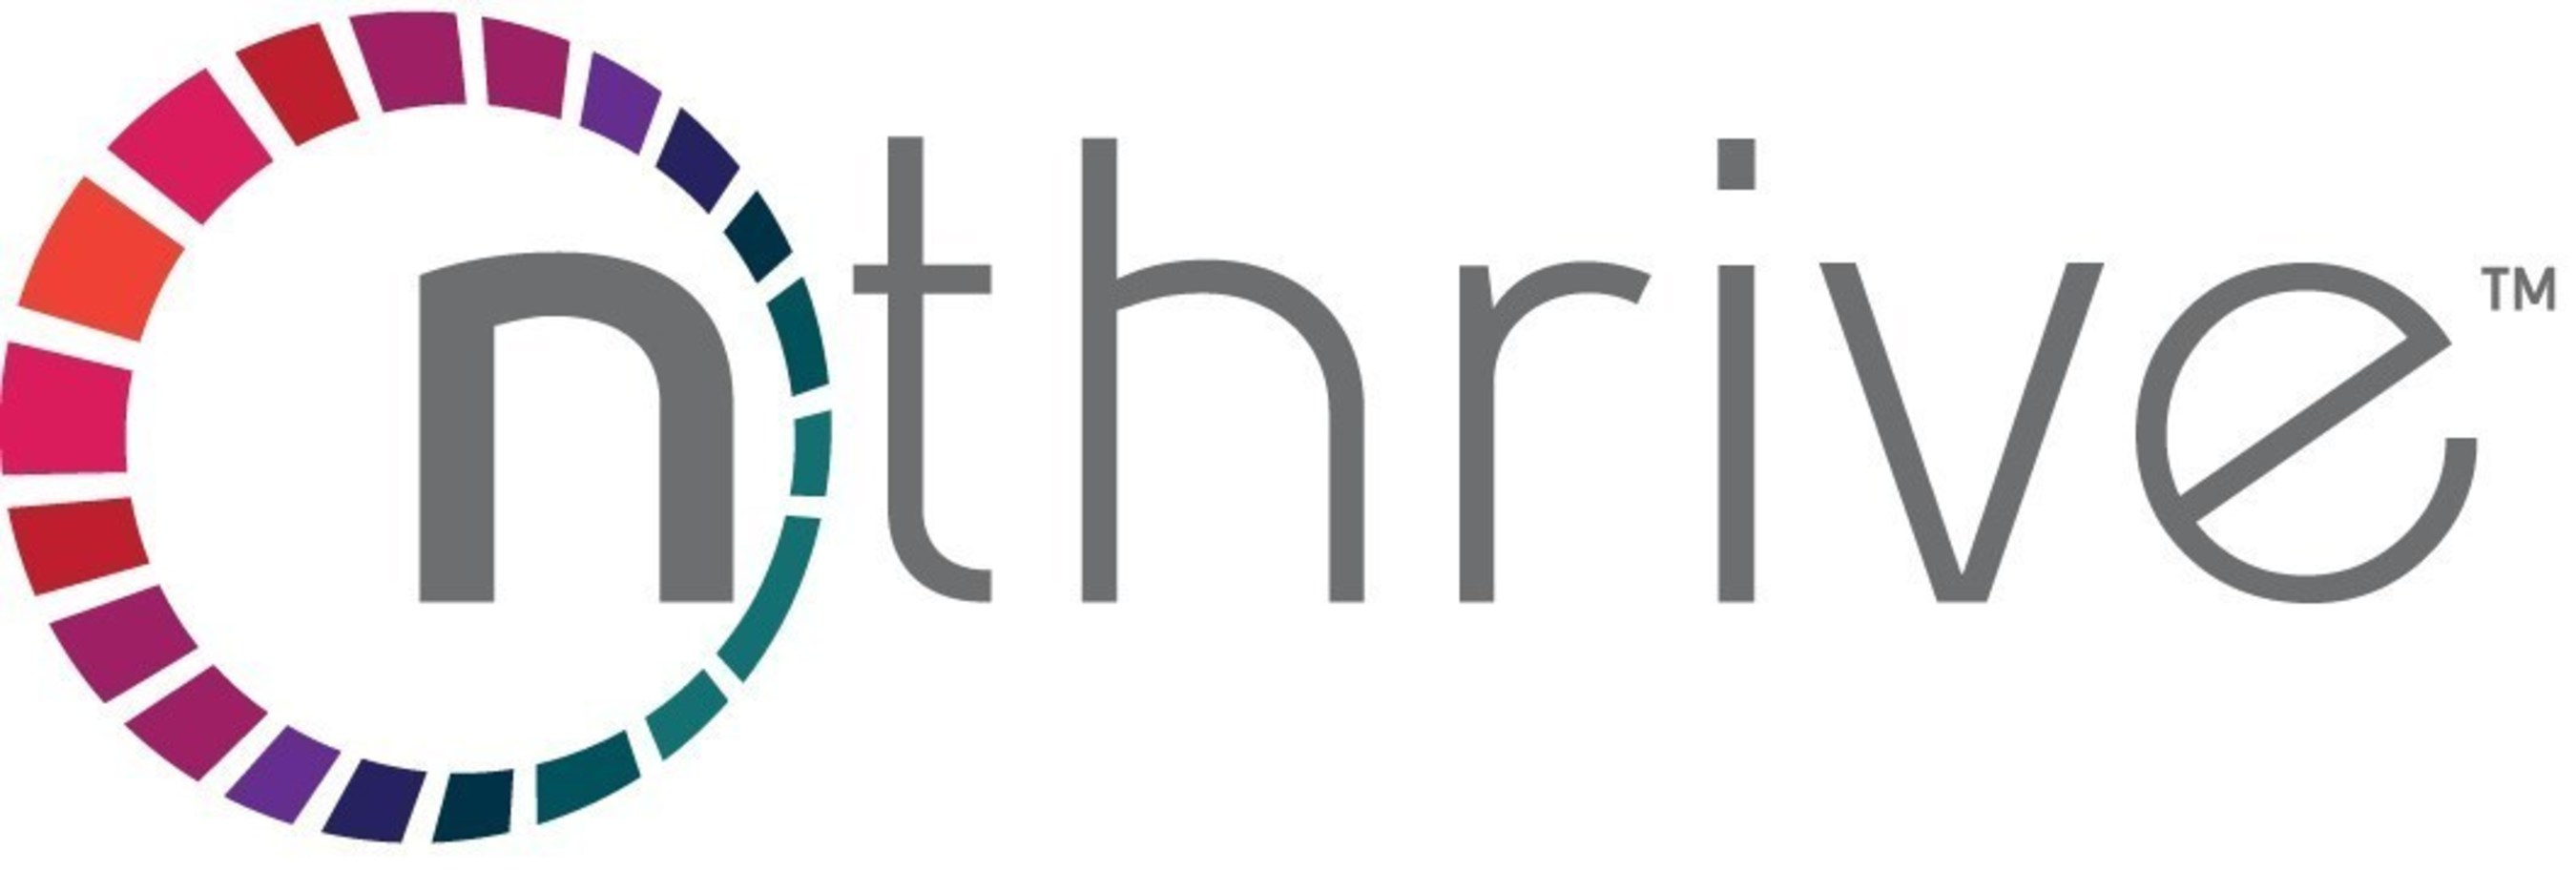 Name of New Enterprise Unveiled at HFMA ANI -- nThrive -- An Independent Provider of Patient-to-Payment Solutions